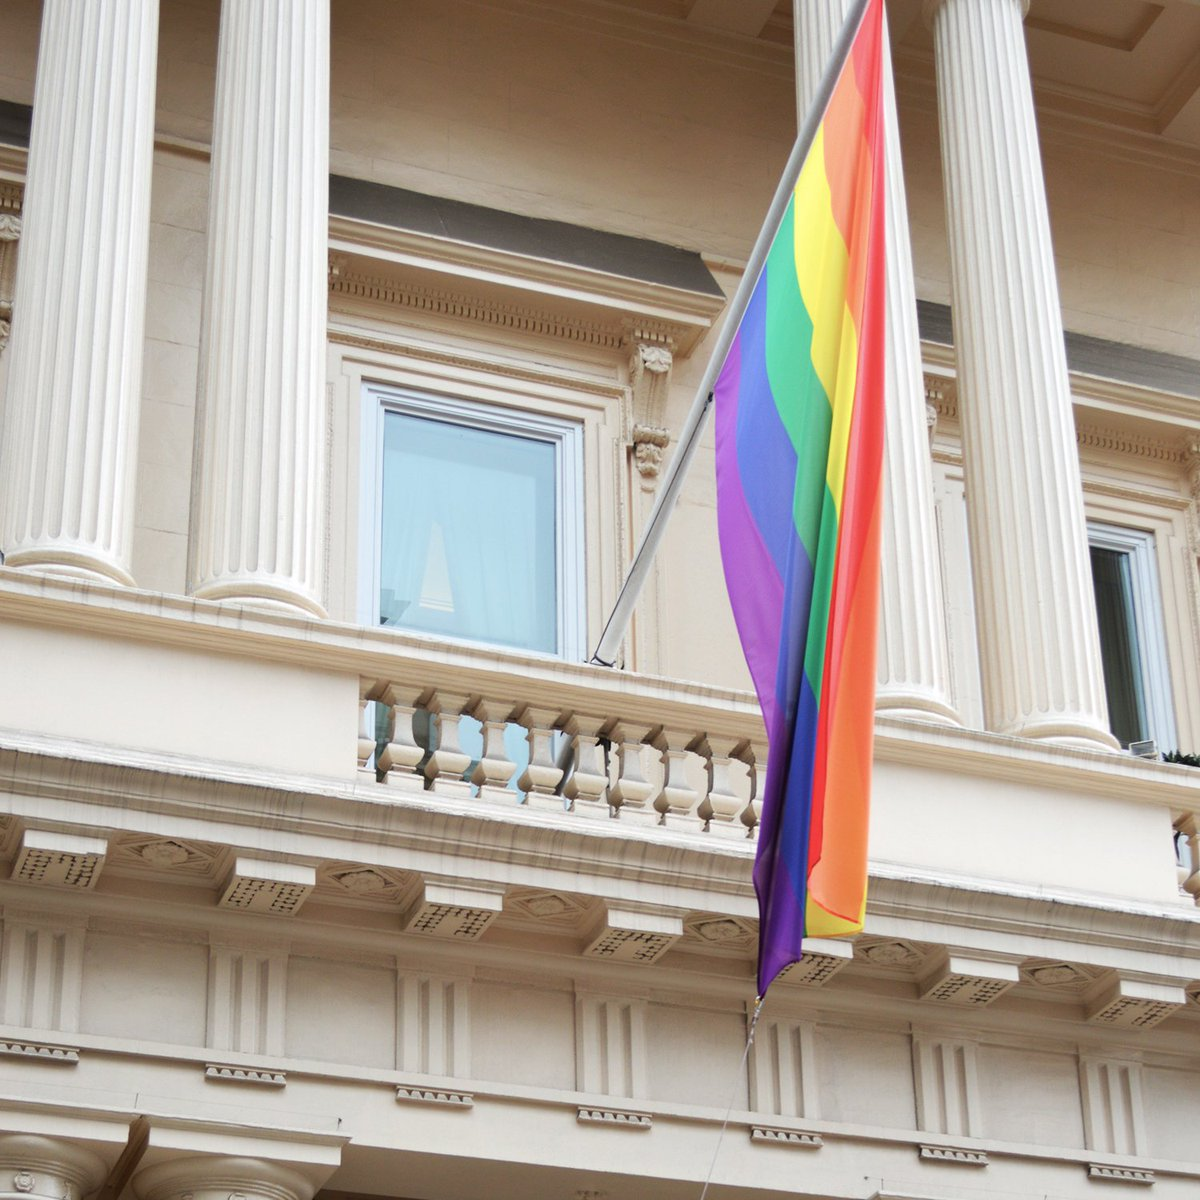 We have a new flag outside #116PallMall today! Championing inclusivity & diversity in business #Pride2016 #LGBTQ https://t.co/aUaLkFZtzG